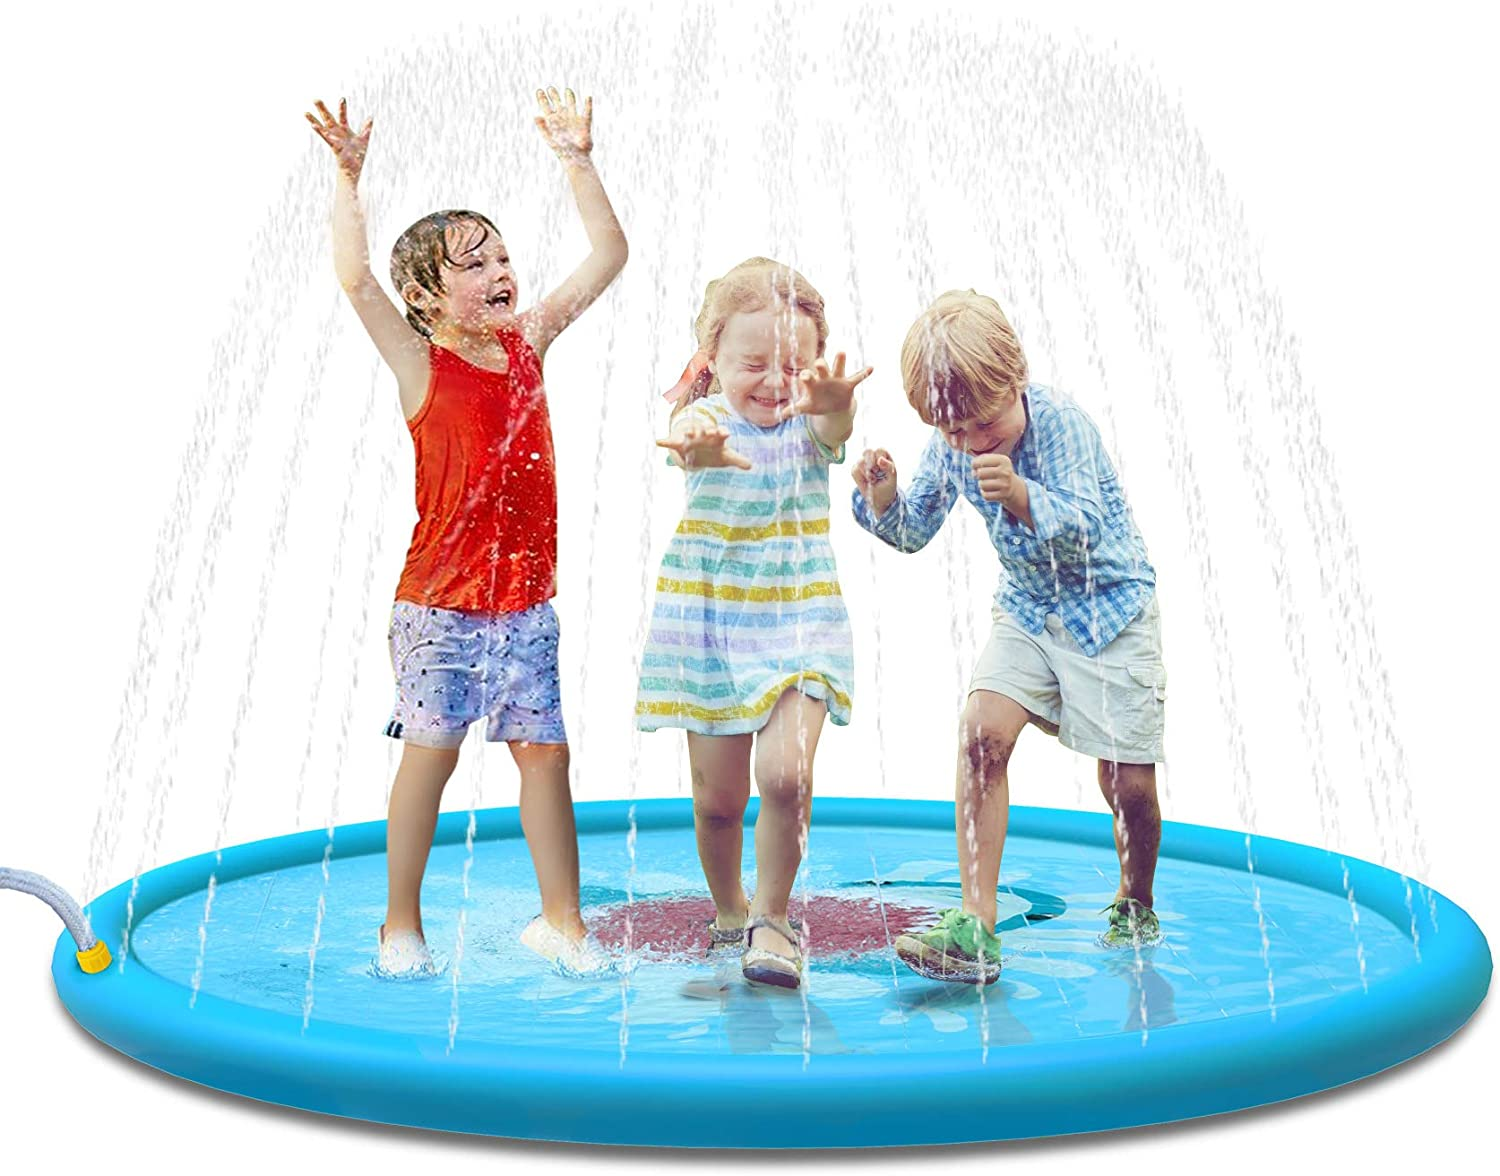 Top 10 Best Water Toys For Toddlers (2020 Reviews & Buying Guide) 4